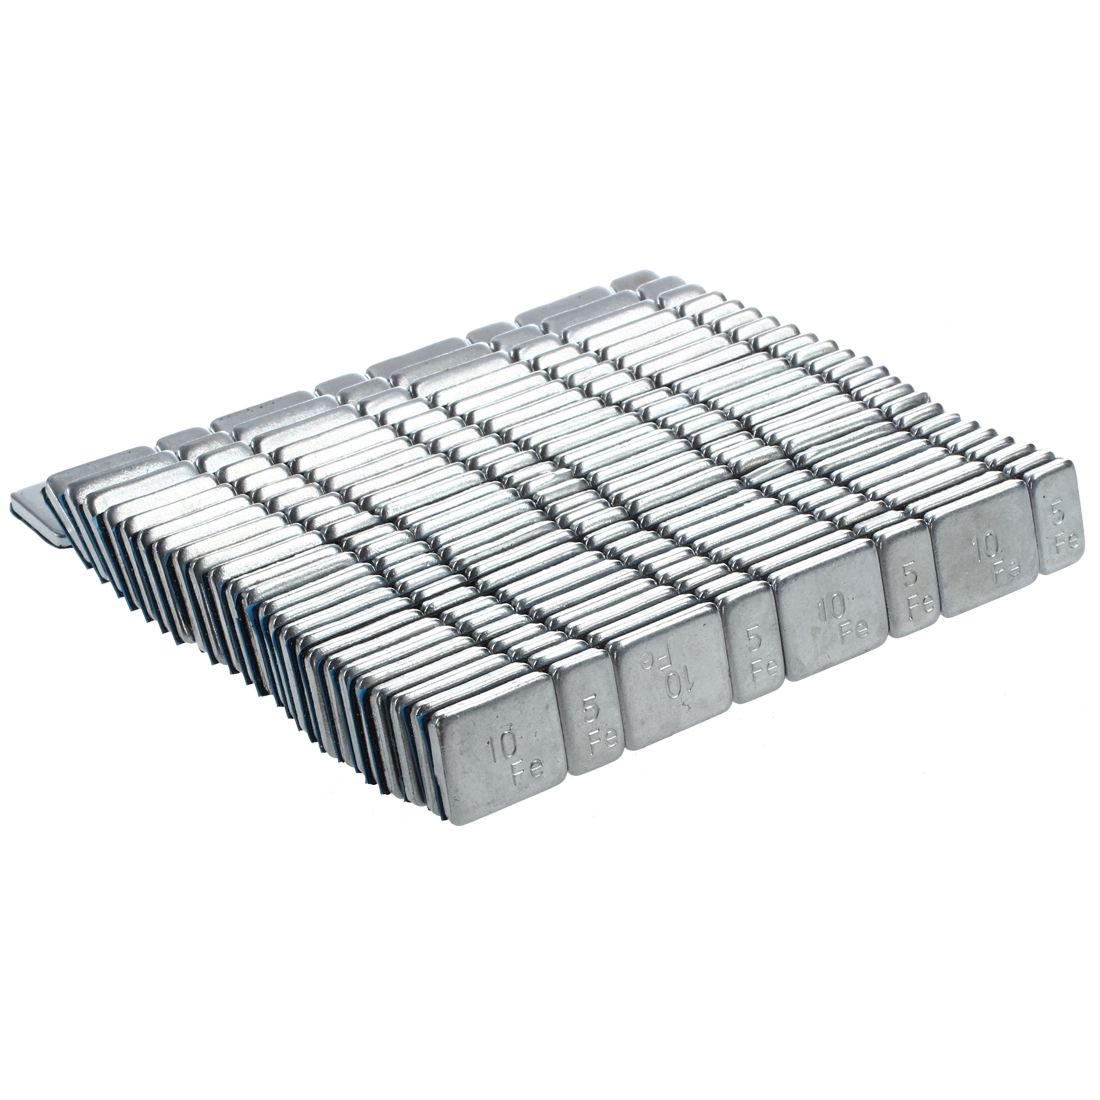 AUTO 25 Pcs 2.1 Oz 60g Tyre Tire Wheel Balance Weights Strips For Car